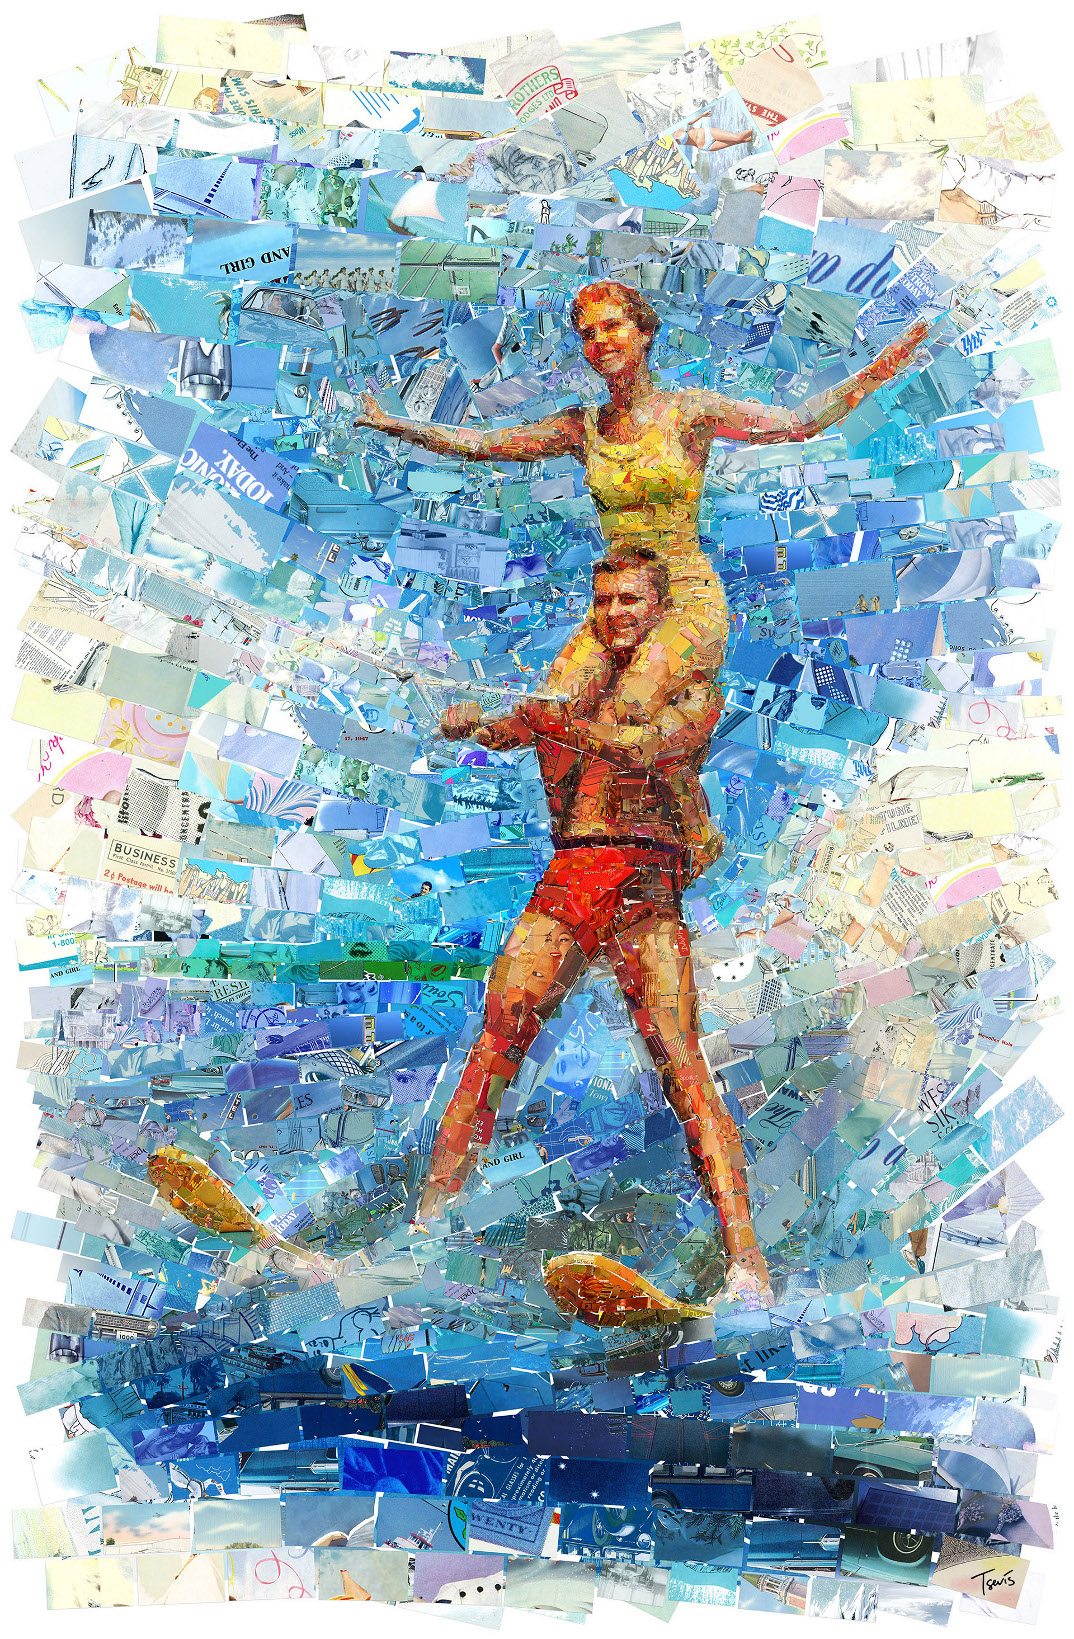 mosaici-collage-riviste-anni-50-60-endless-summer-charis-tsevis-03